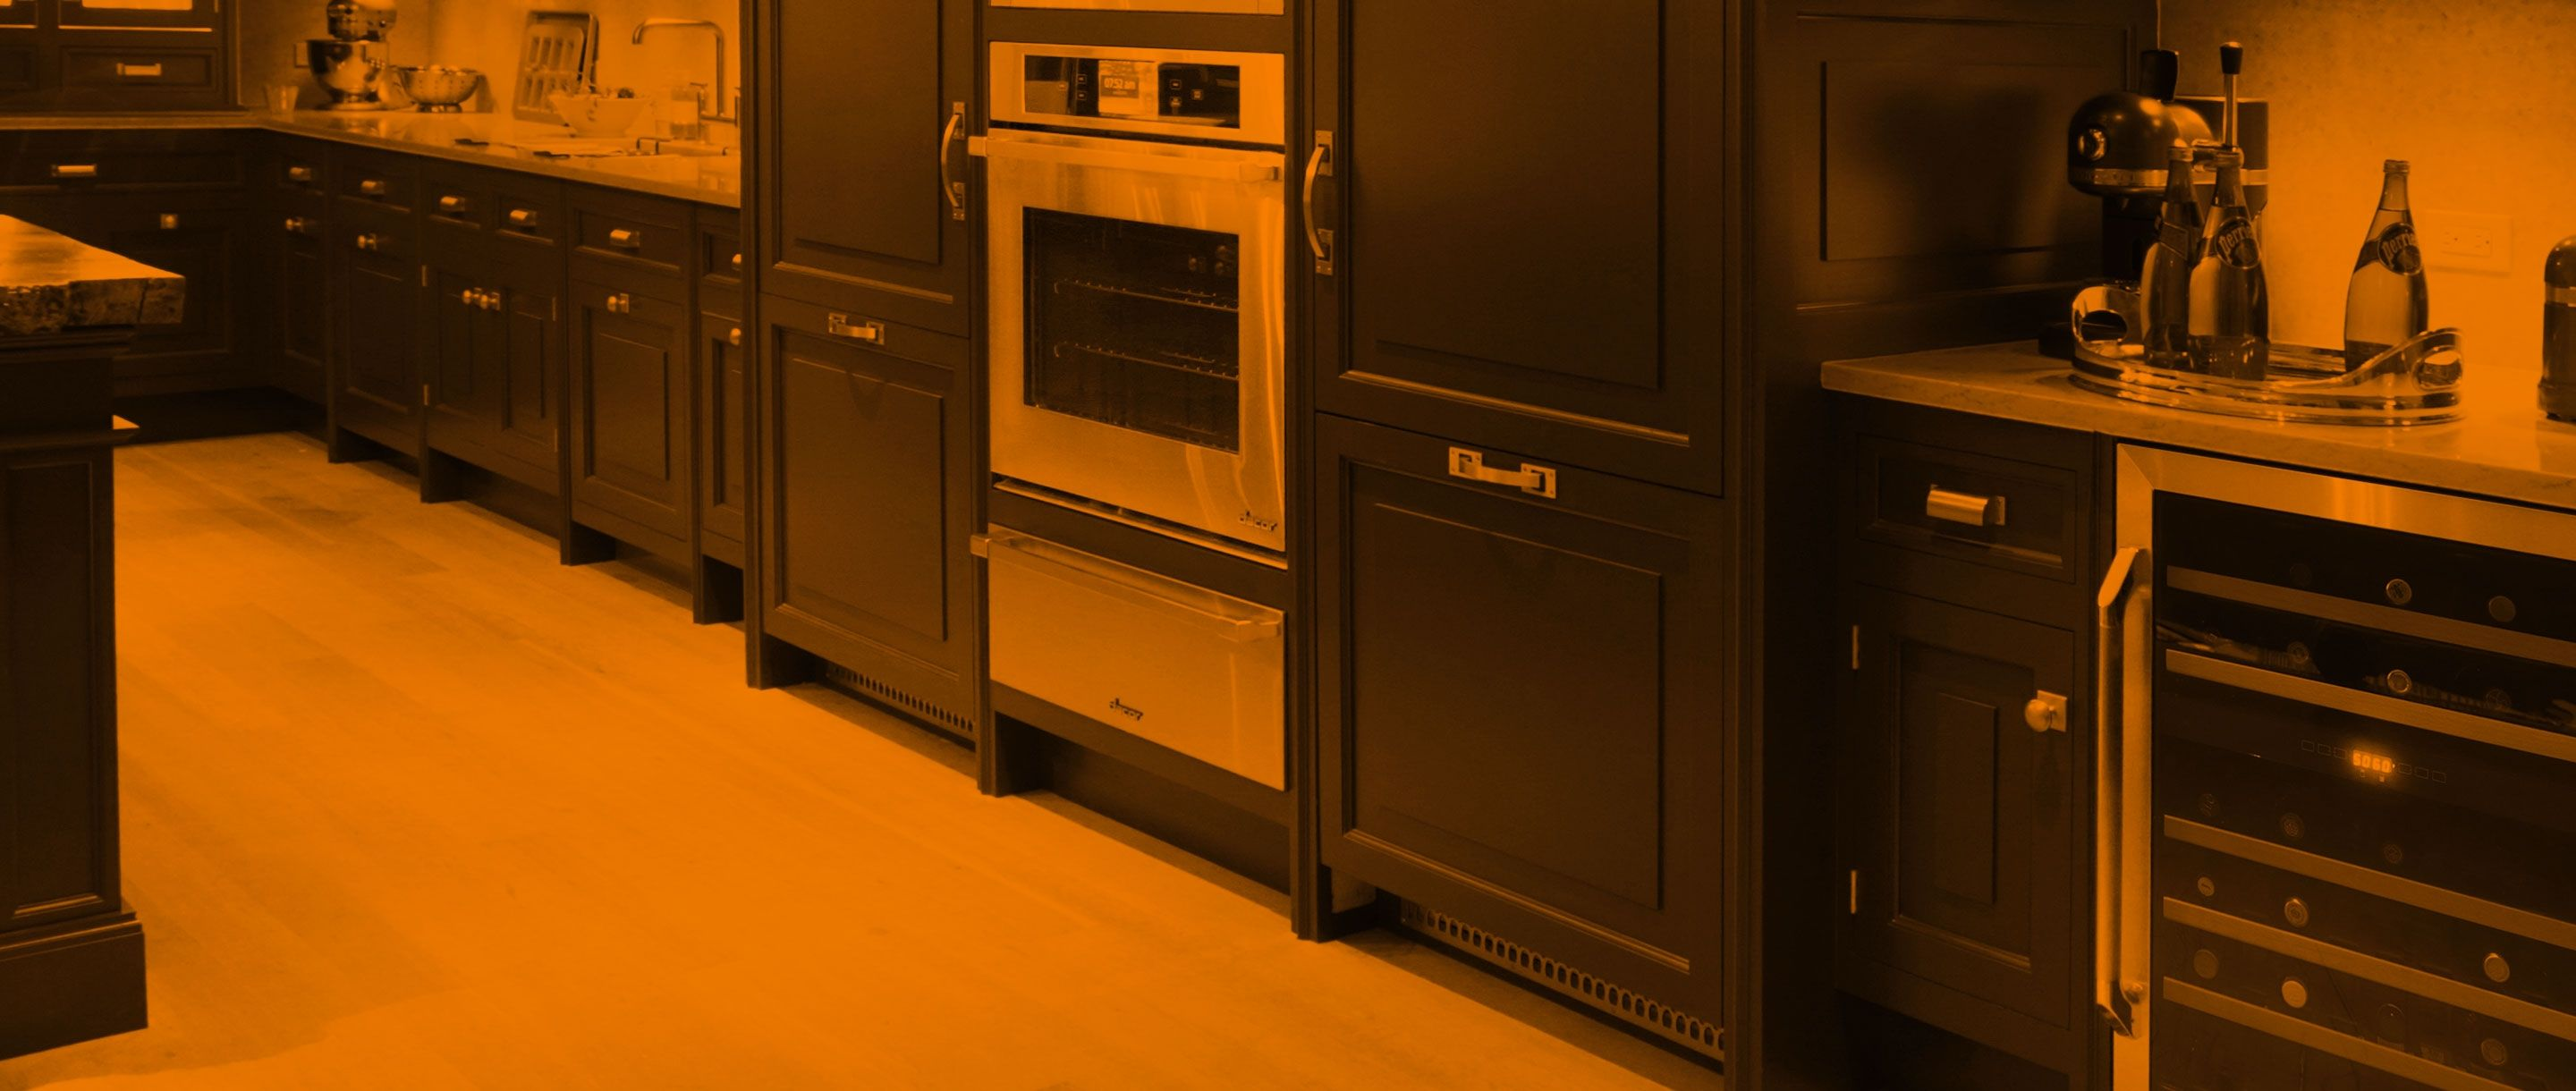 Delicieux Best Kitchen Cabinet Buying Guide   Consumer Reports